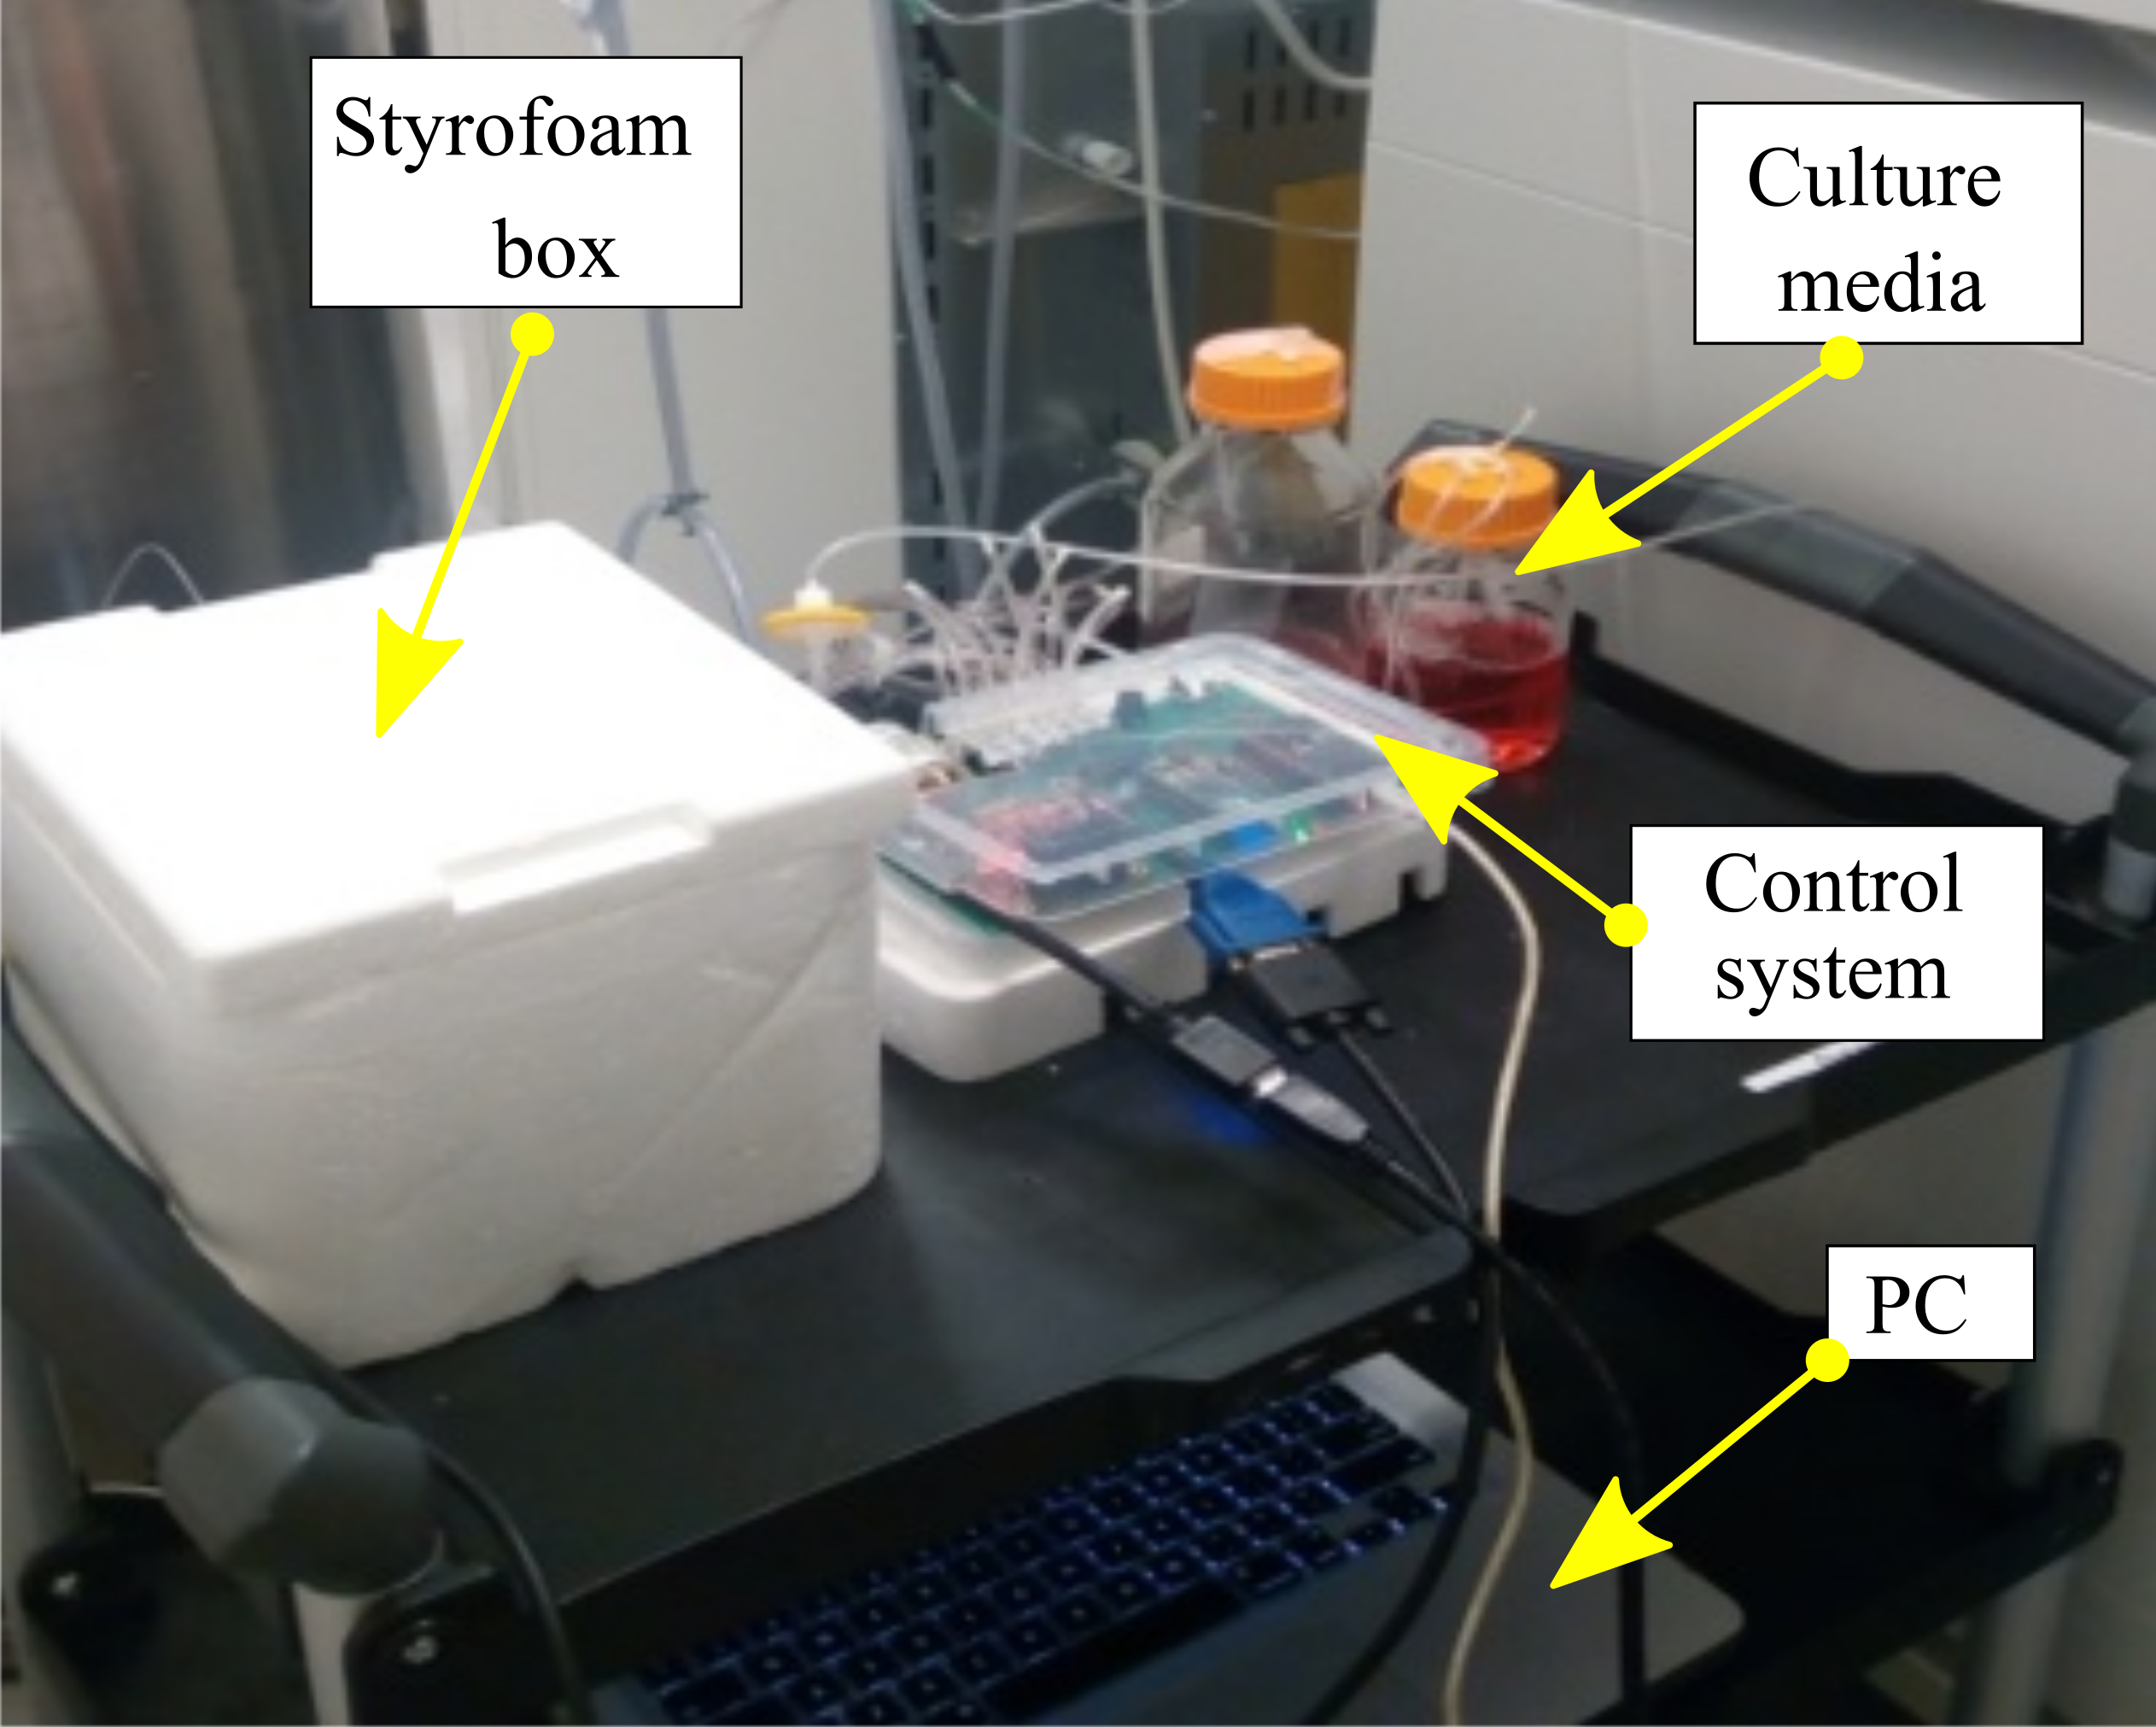 IIT Madras & MIT Scientists grow Human Brain Tissues from a 3D Printed Bioreactor